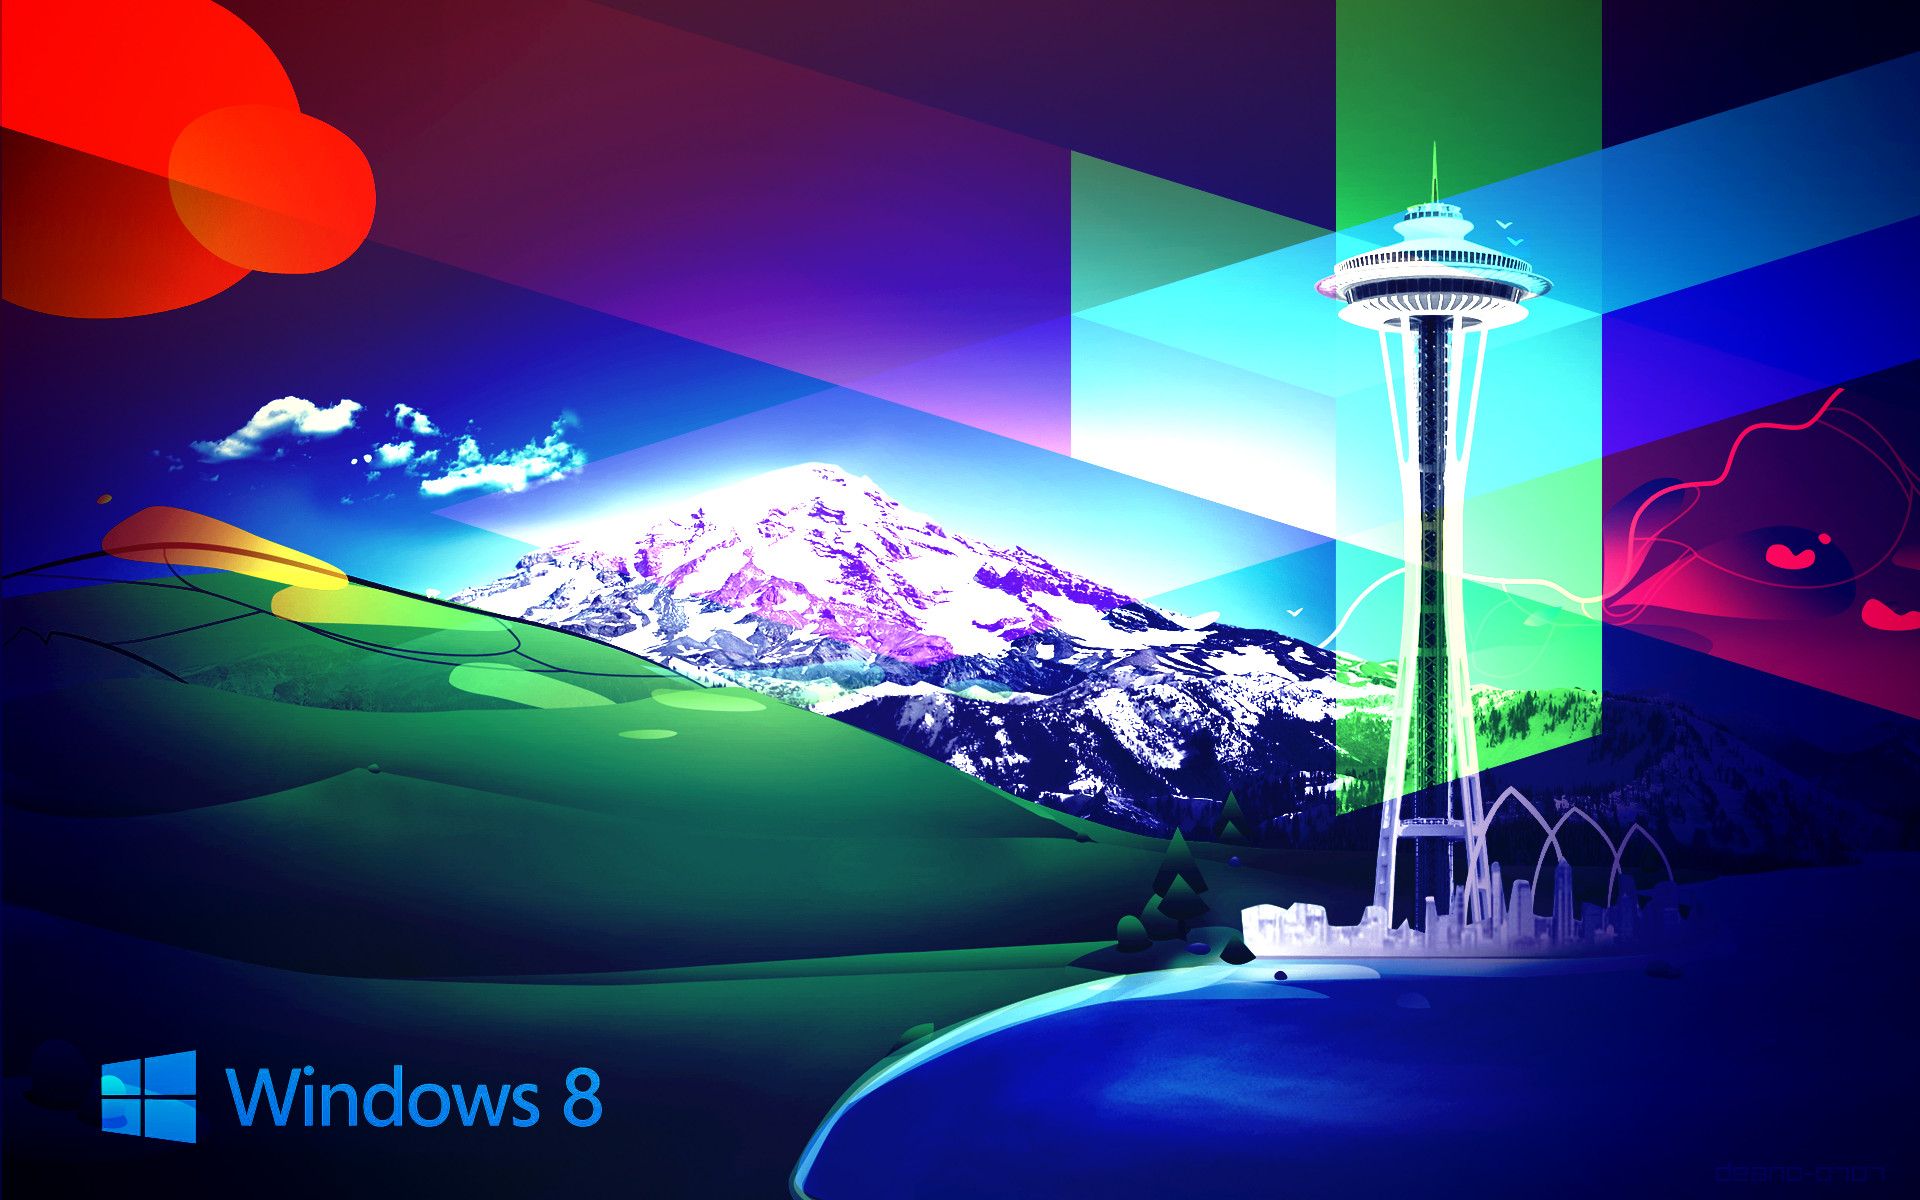 screensavers and wallpaper for windows 8 64 images